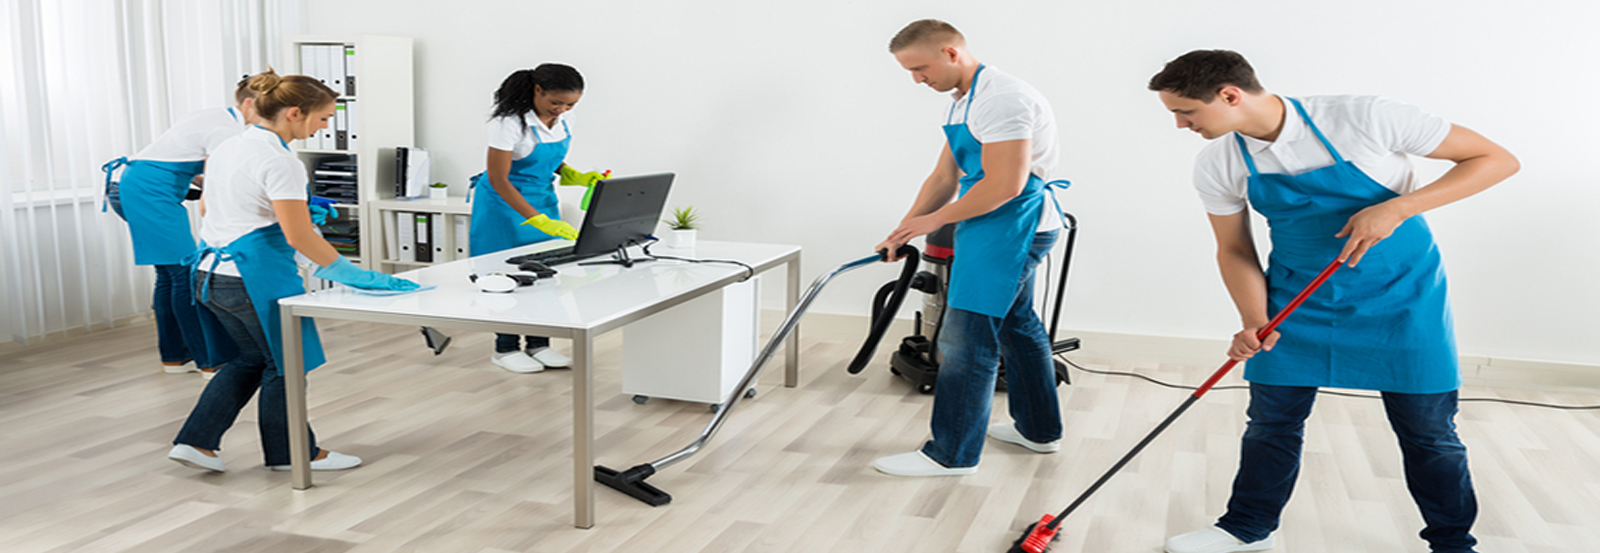 Commercial Cleaning Services Lancaster County NE